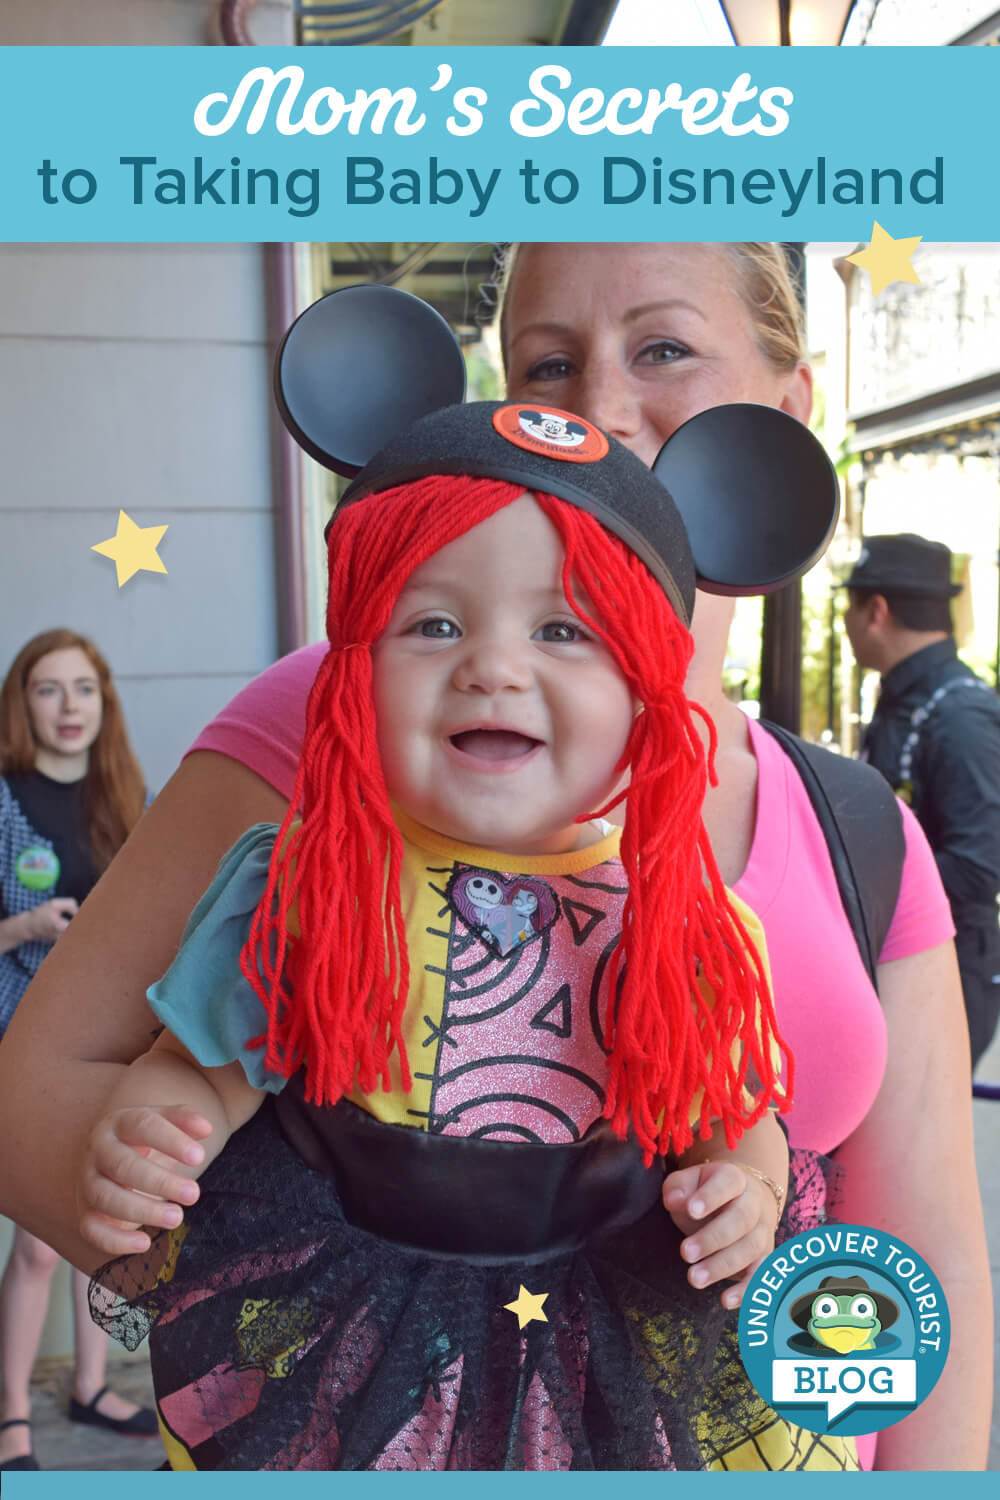 Mom's Secrets to Taking a Baby to Disneyland